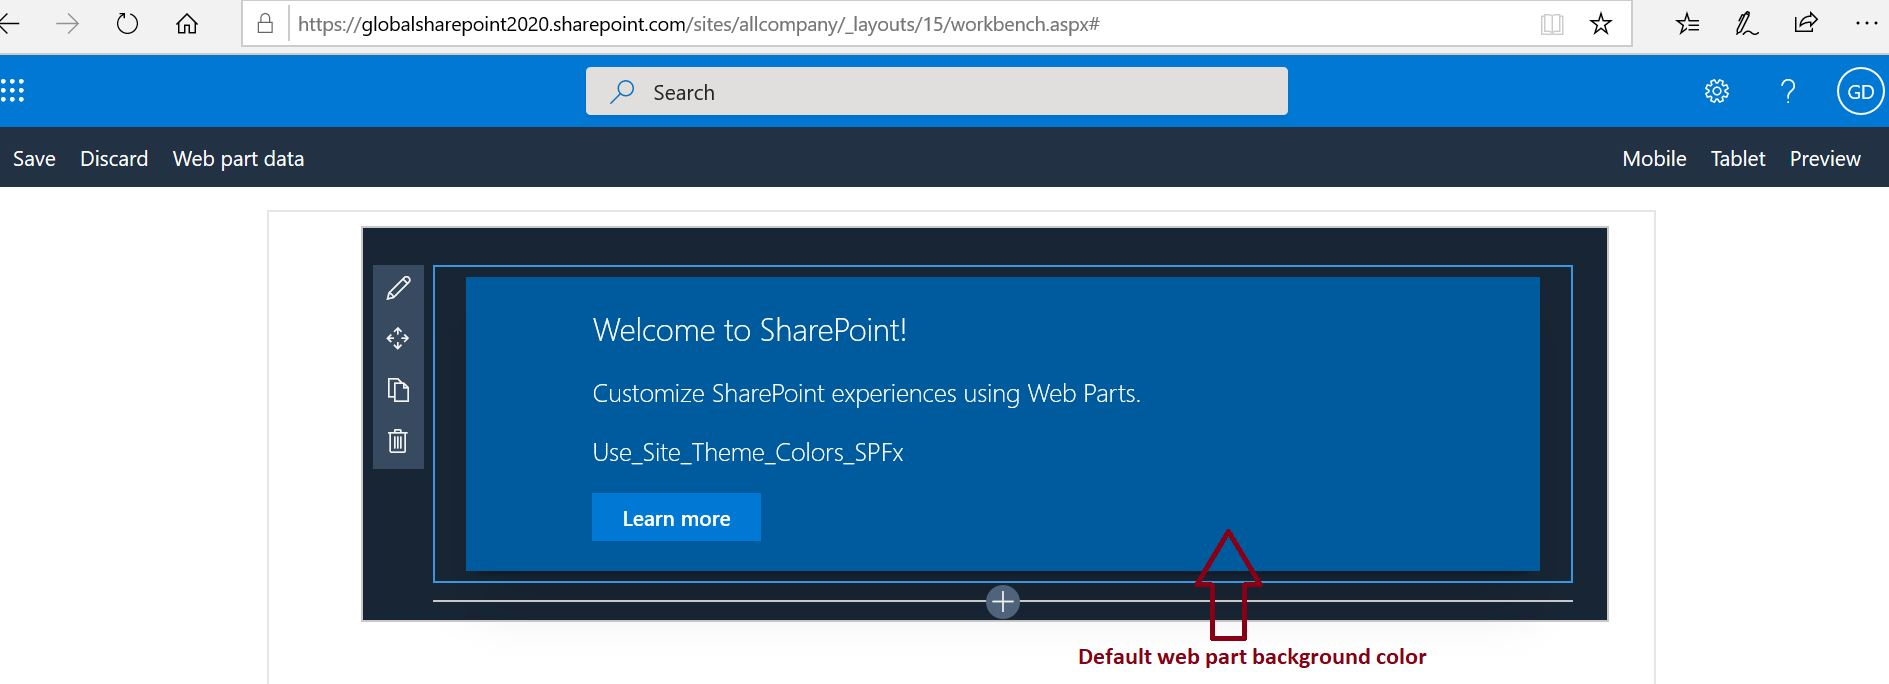 Launch SPFx web part in SharePoint Online workbench - Default web part background color